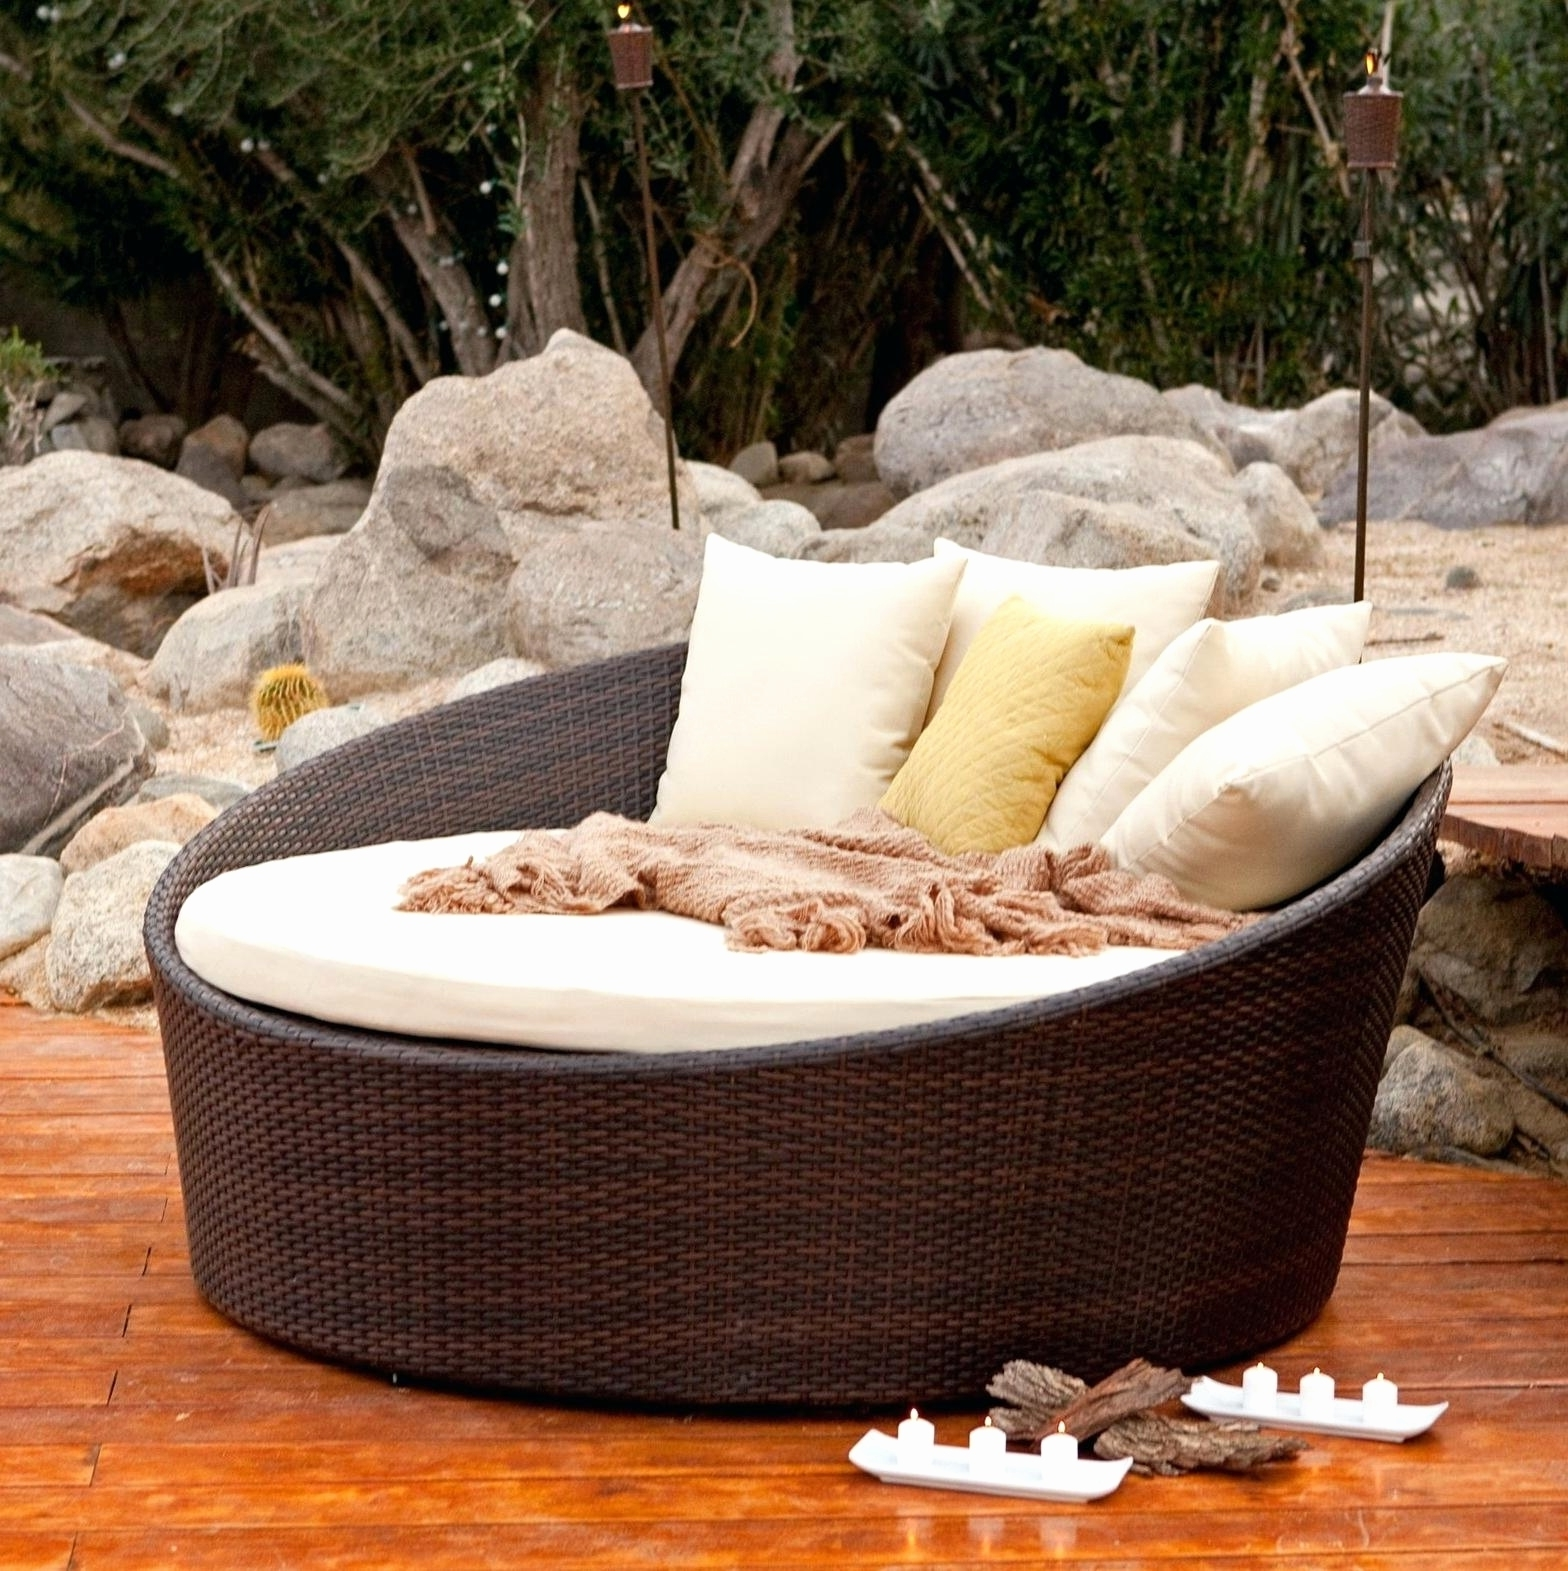 Round Chaise Lounges Inside Best And Newest Convertible Chair : Outdoor Lounge Chairs Patio Chaise Lounge (View 13 of 15)